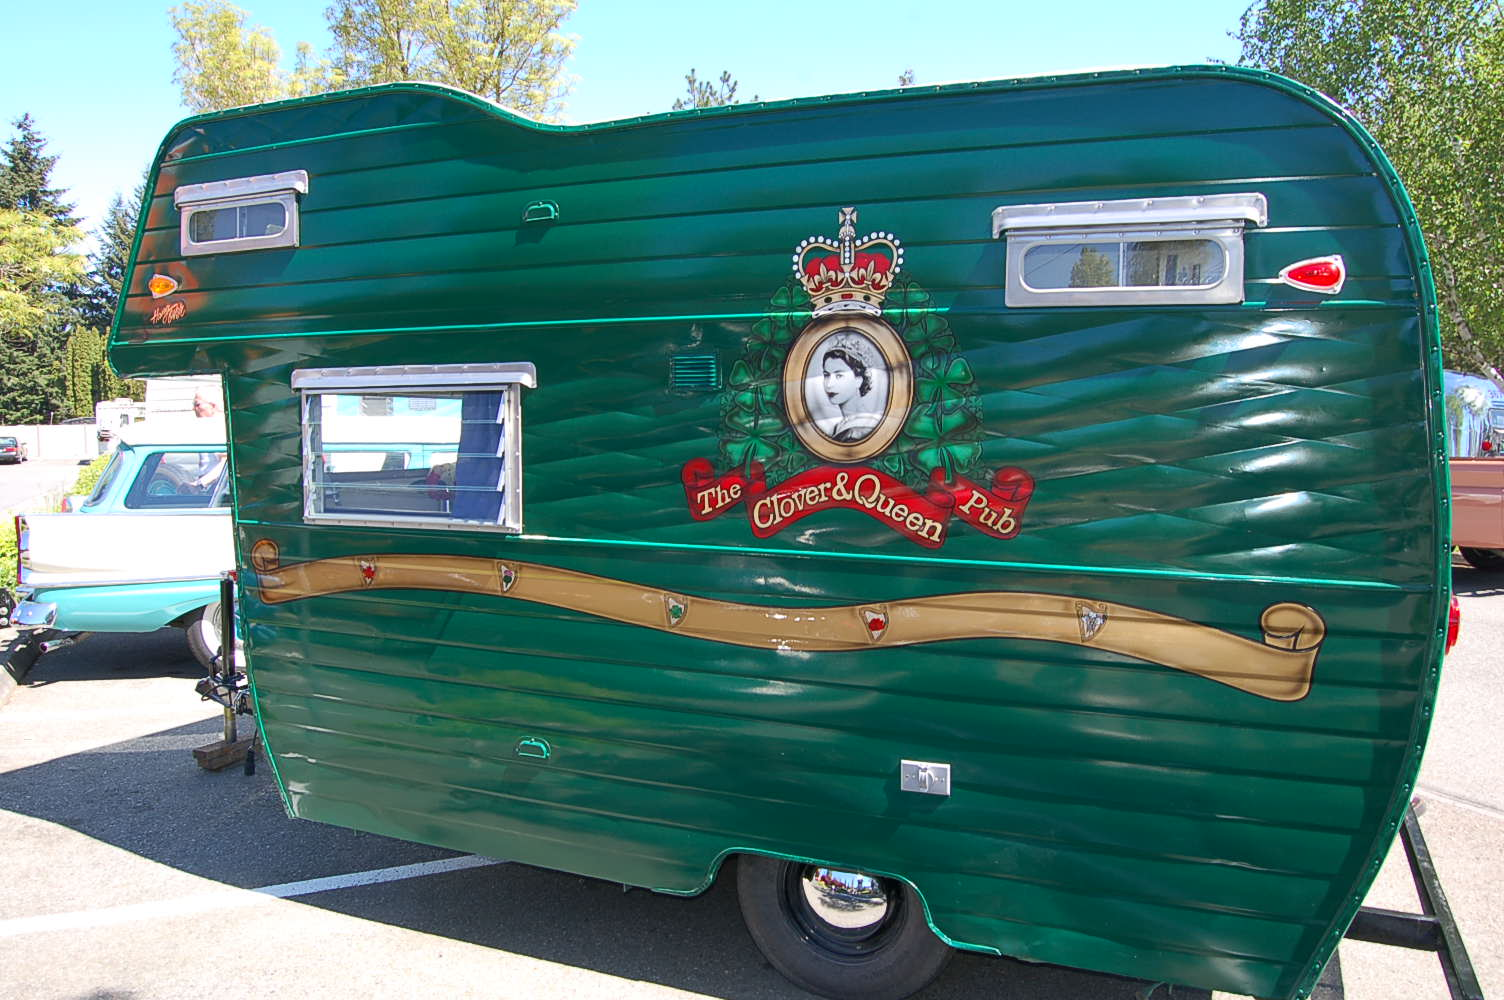 Vintage Aloha Trailer Pictures and History, from OldTrailer com